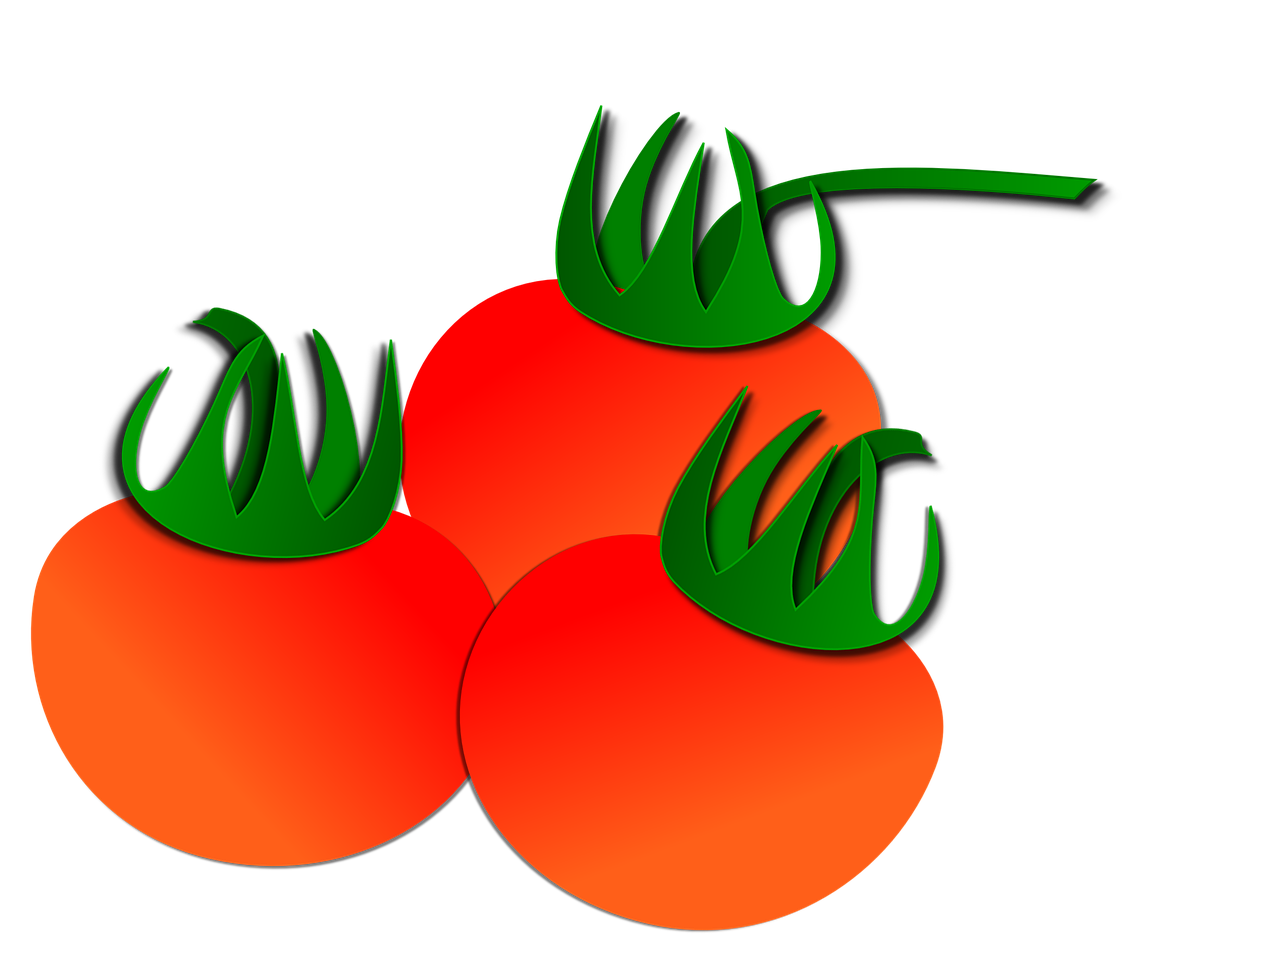 Tomato vegetables clip art. Tomatoes clipart round fruit